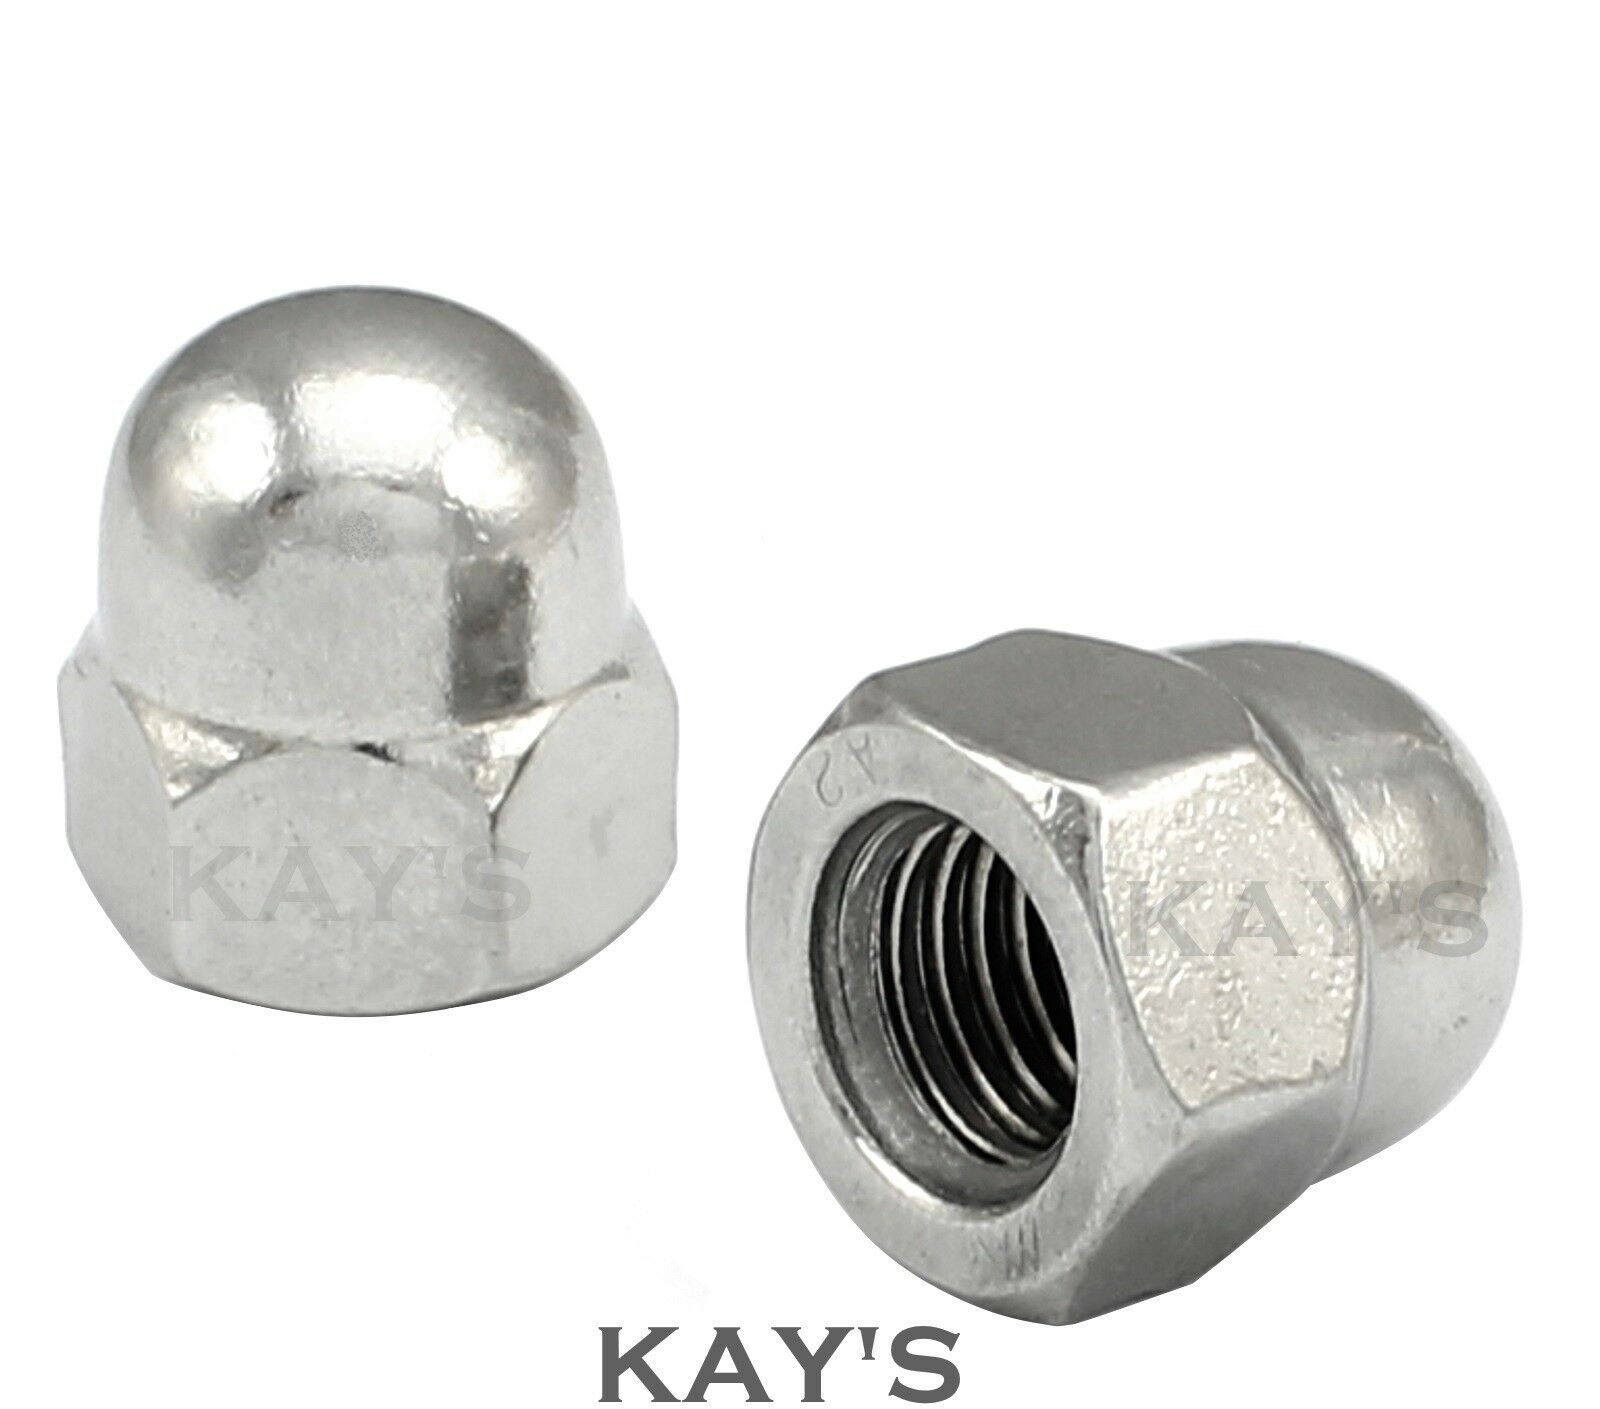 UNC DOME NUTS A2 STAINLESS STEEL 4, 6, 8, 10, 1/4